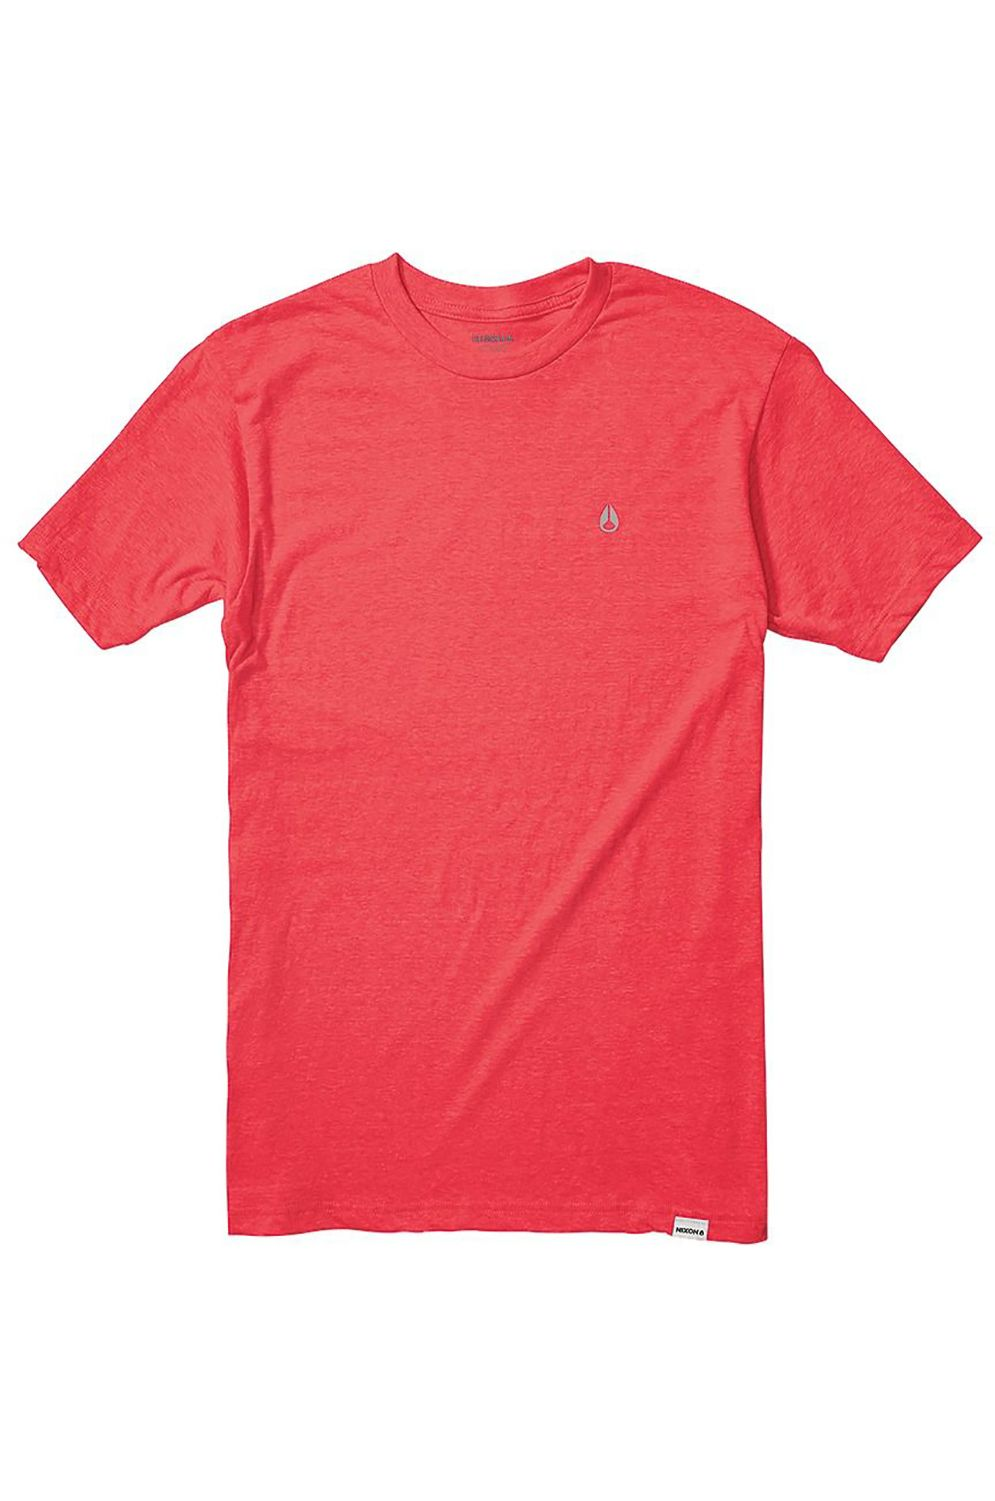 T-Shirt Nixon SPARROW Red Heather